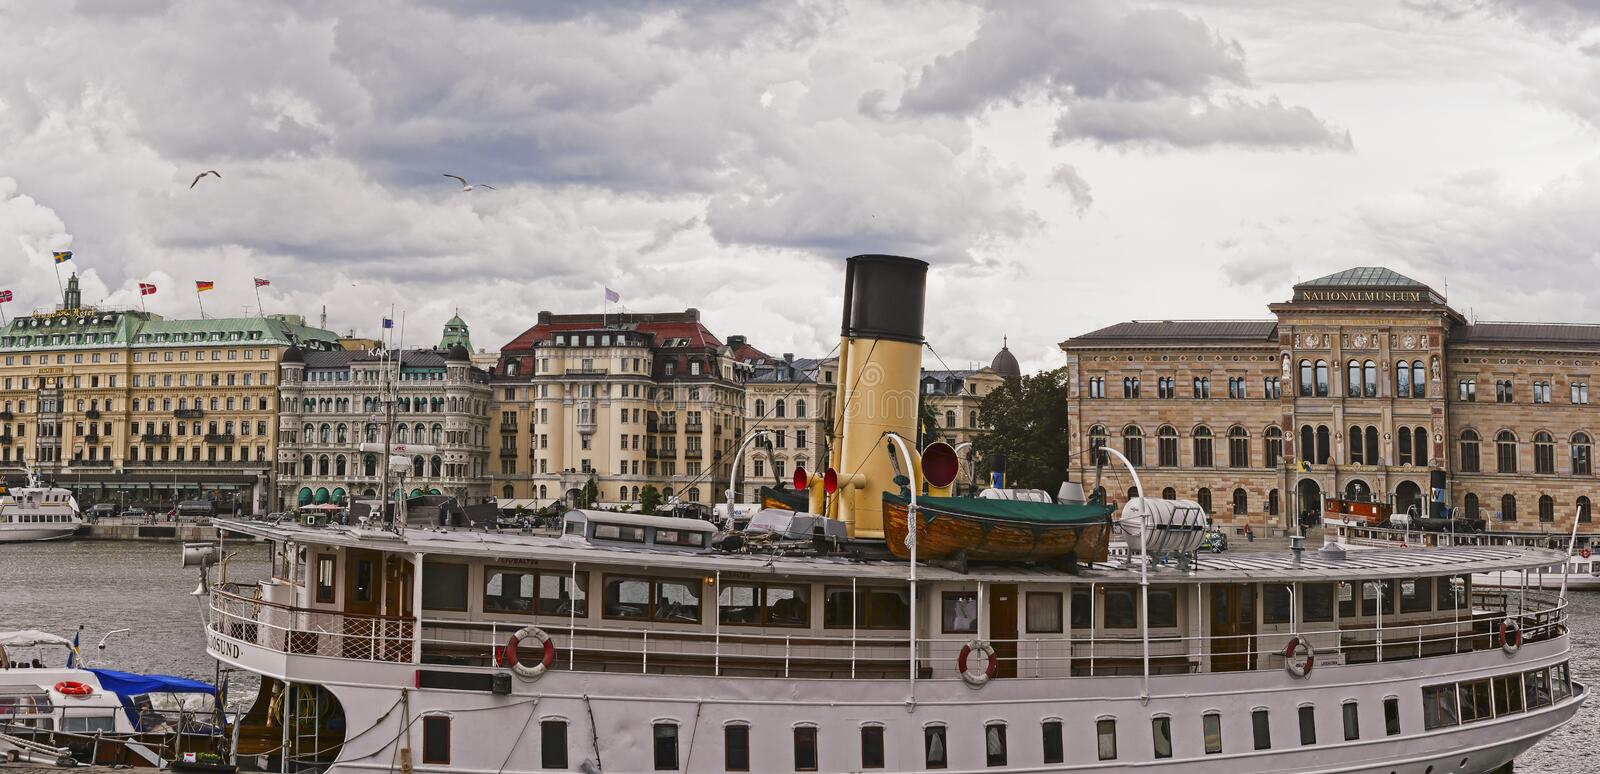 European capitals. Stockholm view with boat and buildings. European capitals. Panoramic view of a modern and ancient  on the sea building in Stockholm city royalty free stock photography